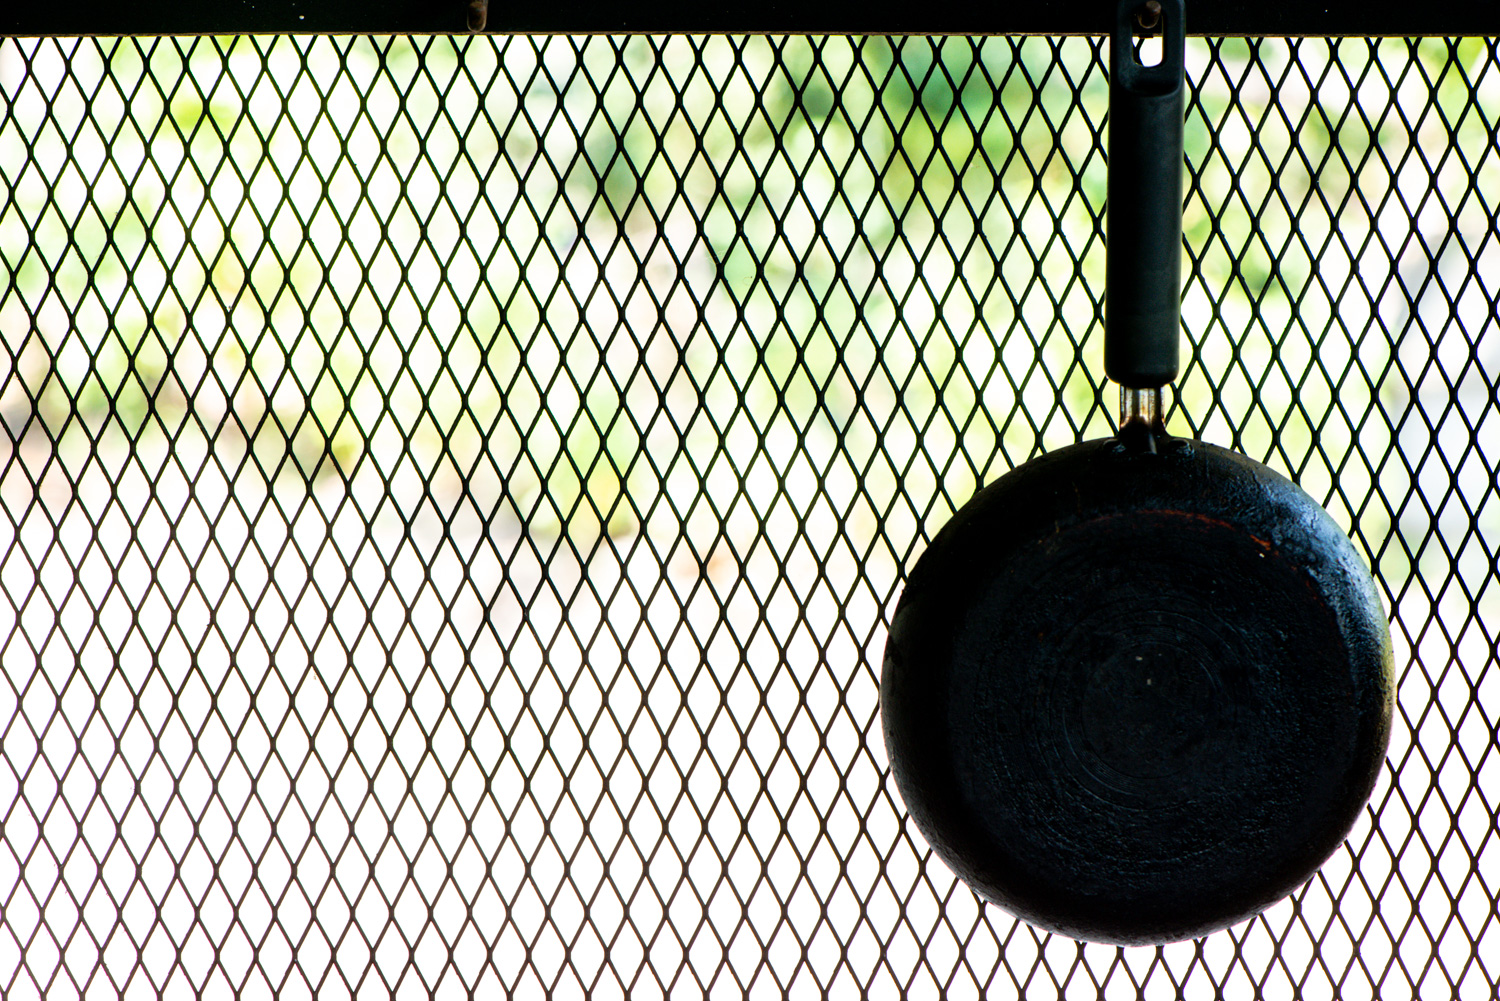 how to photograph ordinary things - frying pan hanging on a wire fence